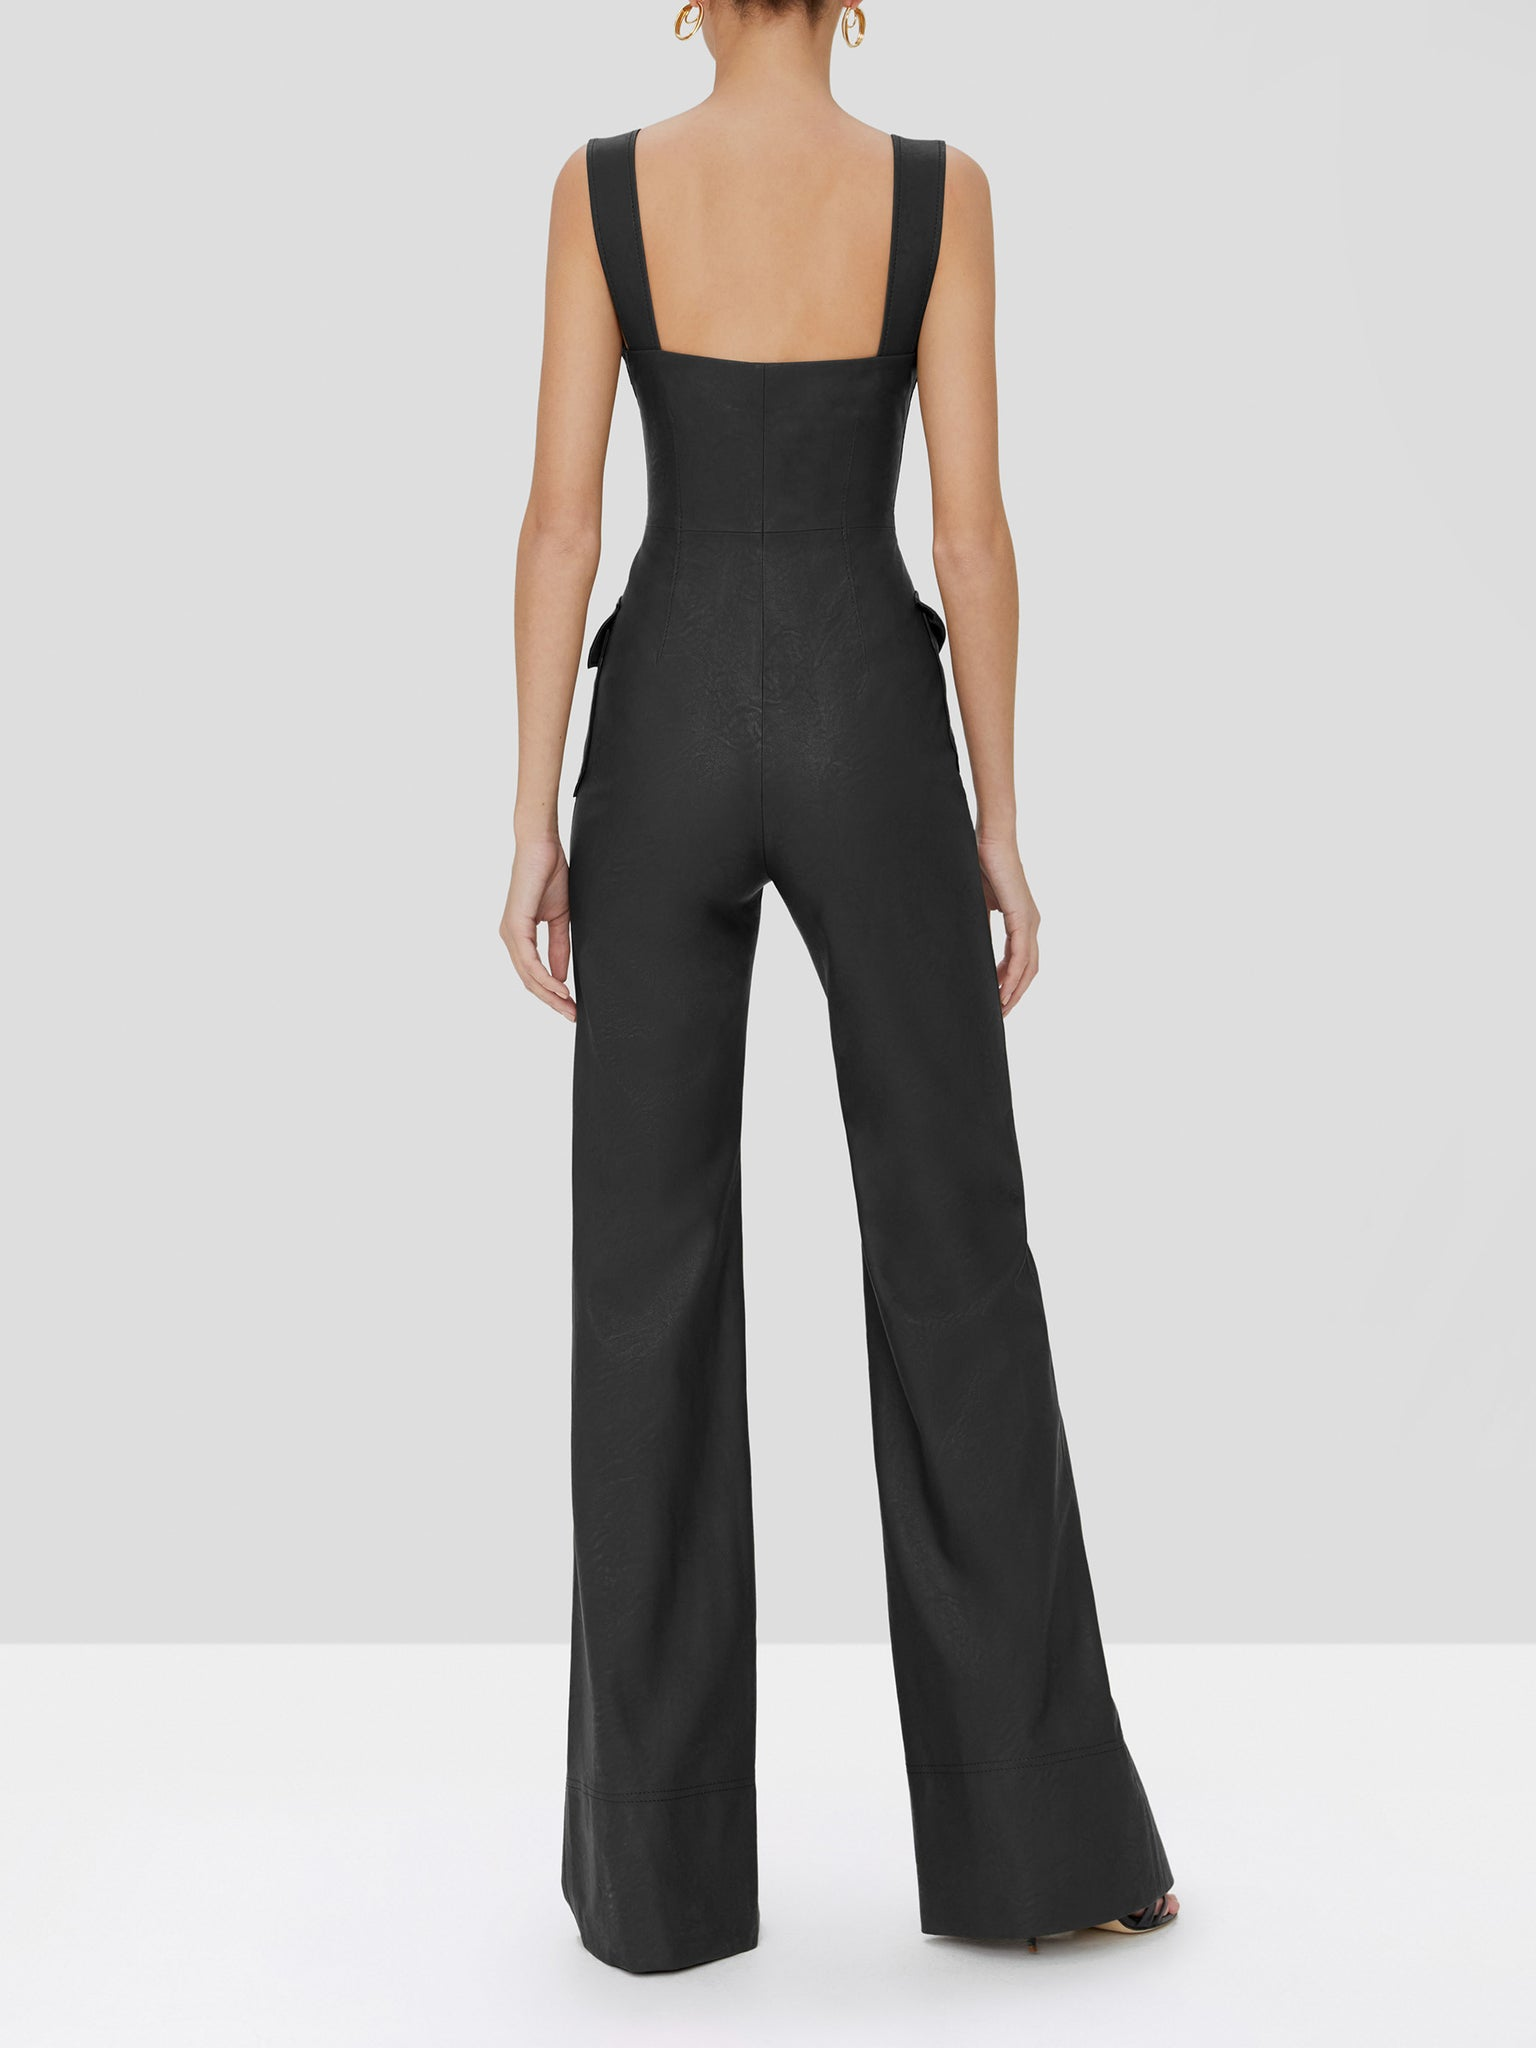 reverie jumpsuit in black - Rear View